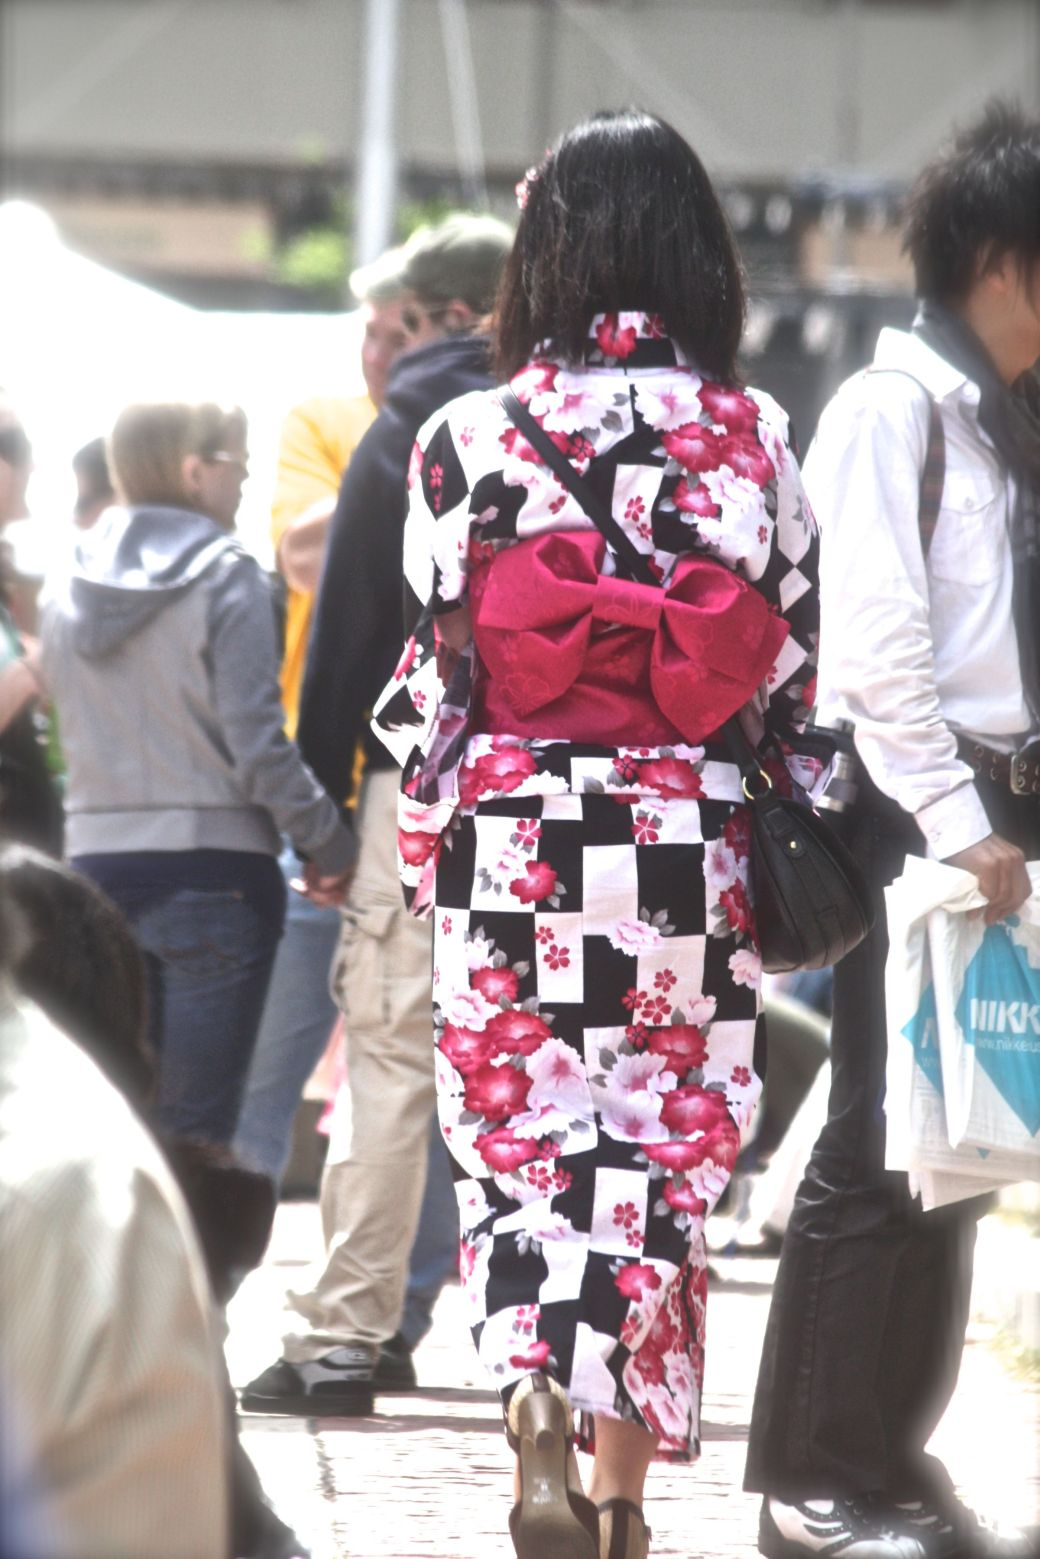 boston government center japanese festival may 19 2013 woman in kimono with bow in the back